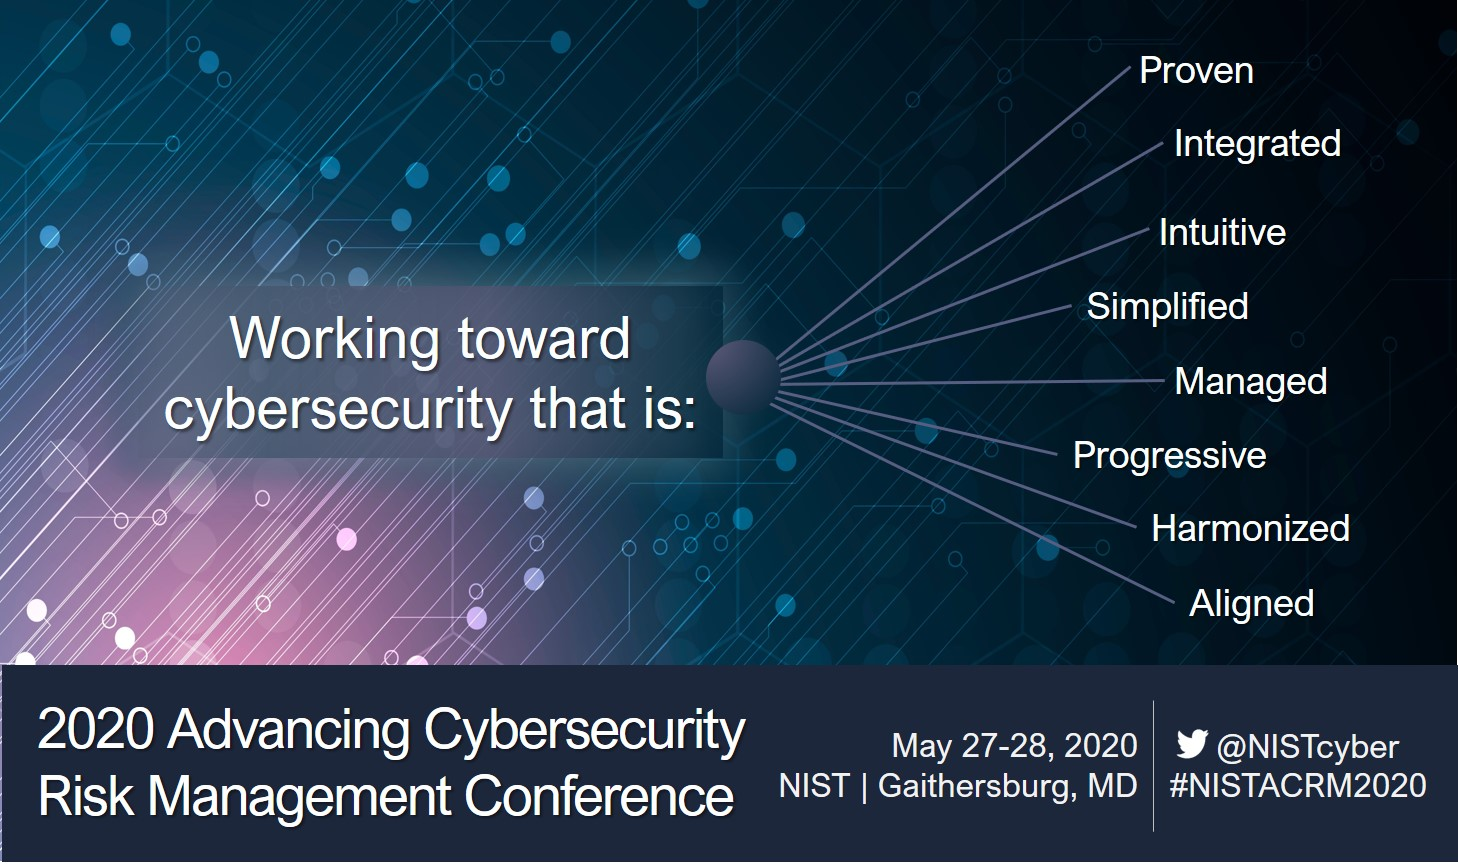 2020 Advancing Cybersecurity Risk Management Conference